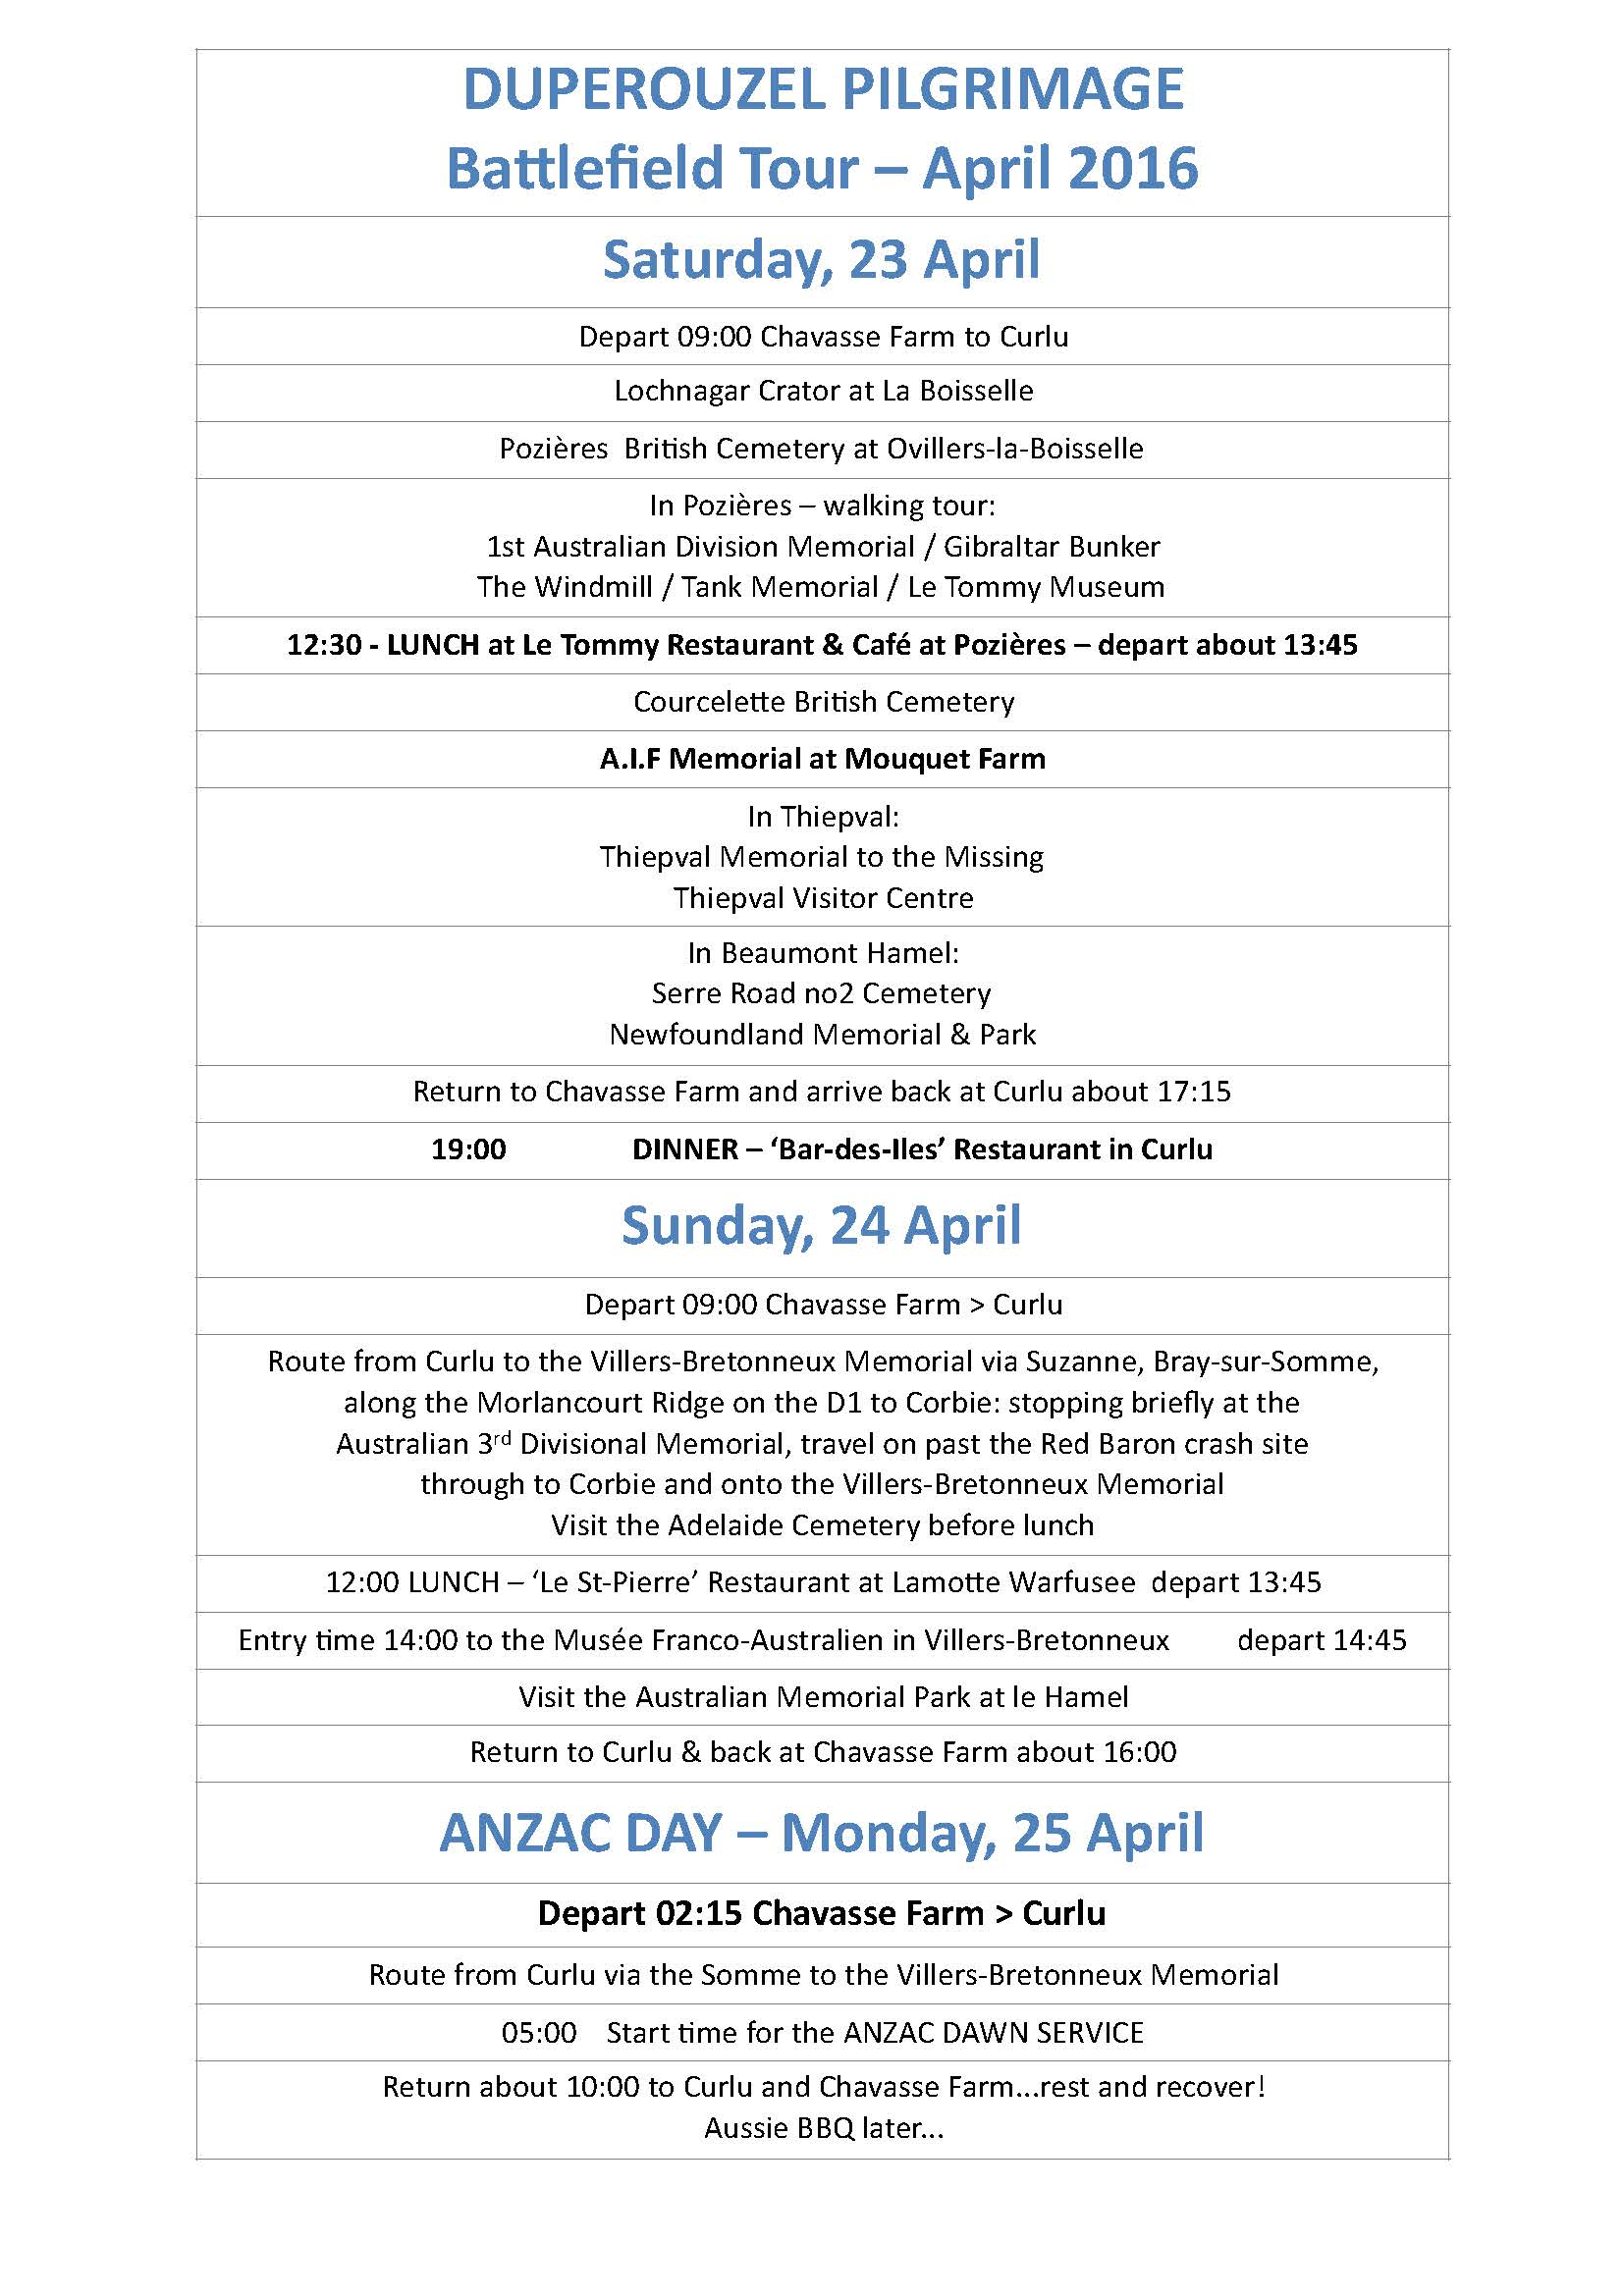 Itinerary March Battlefield Tour Somme Anzac 2016